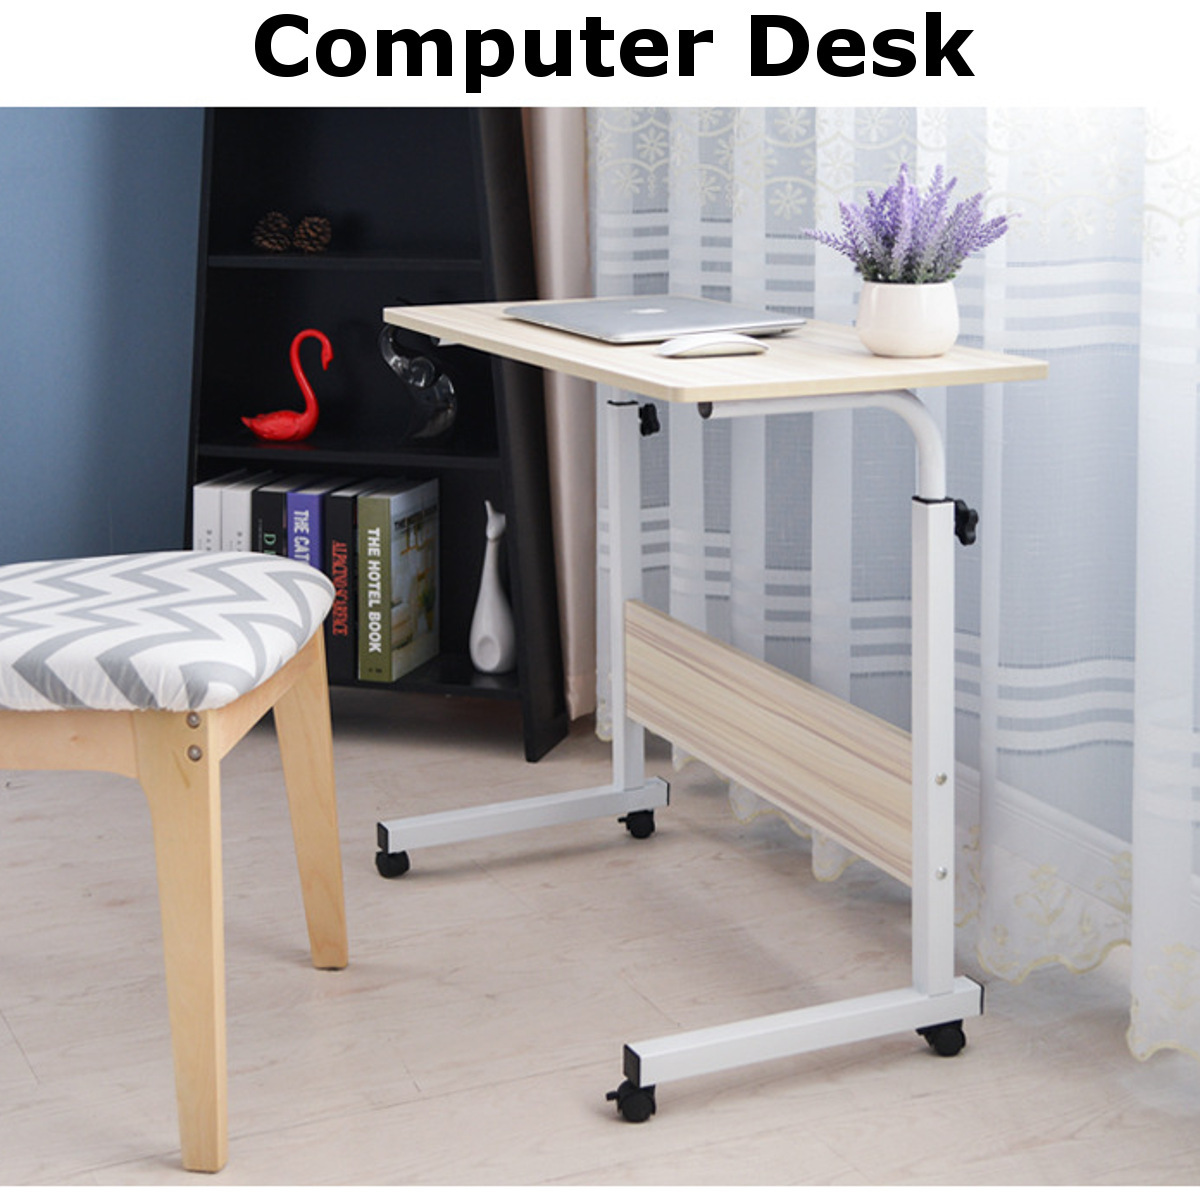 70-90cm Foldable Computer Desks With Roller Laptop PC Table Student Learning Desk Movable Bed Tray Office Home Vented Stand